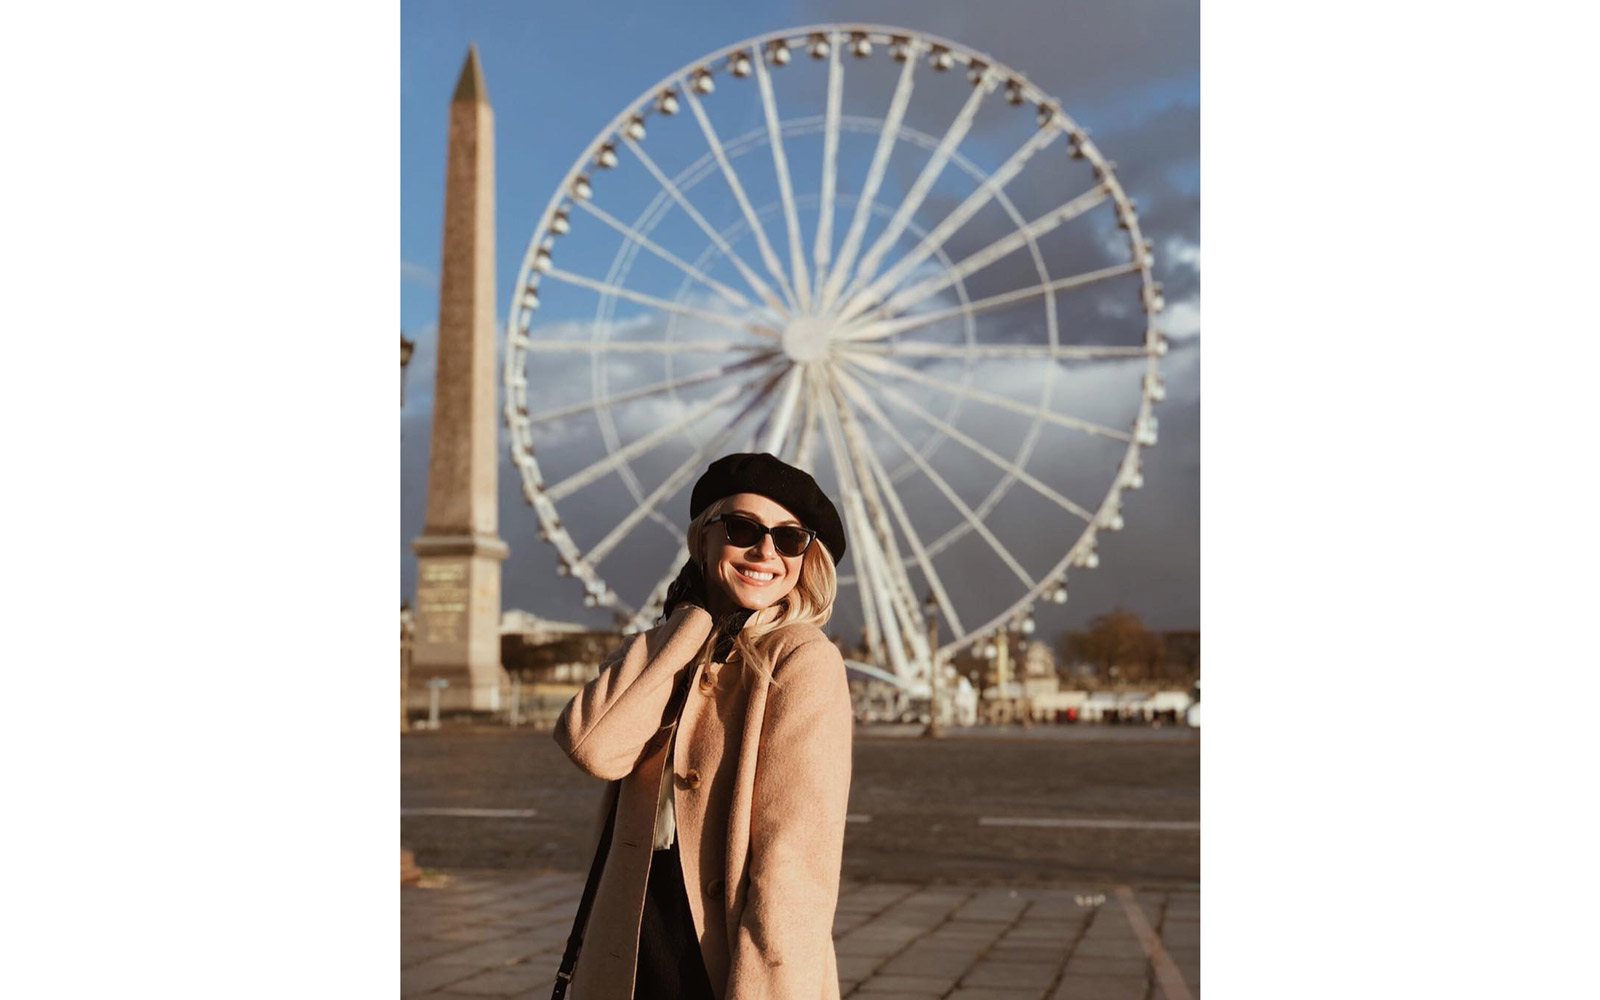 Julianne Hough at the Big Wheel in Place de la Concorde.